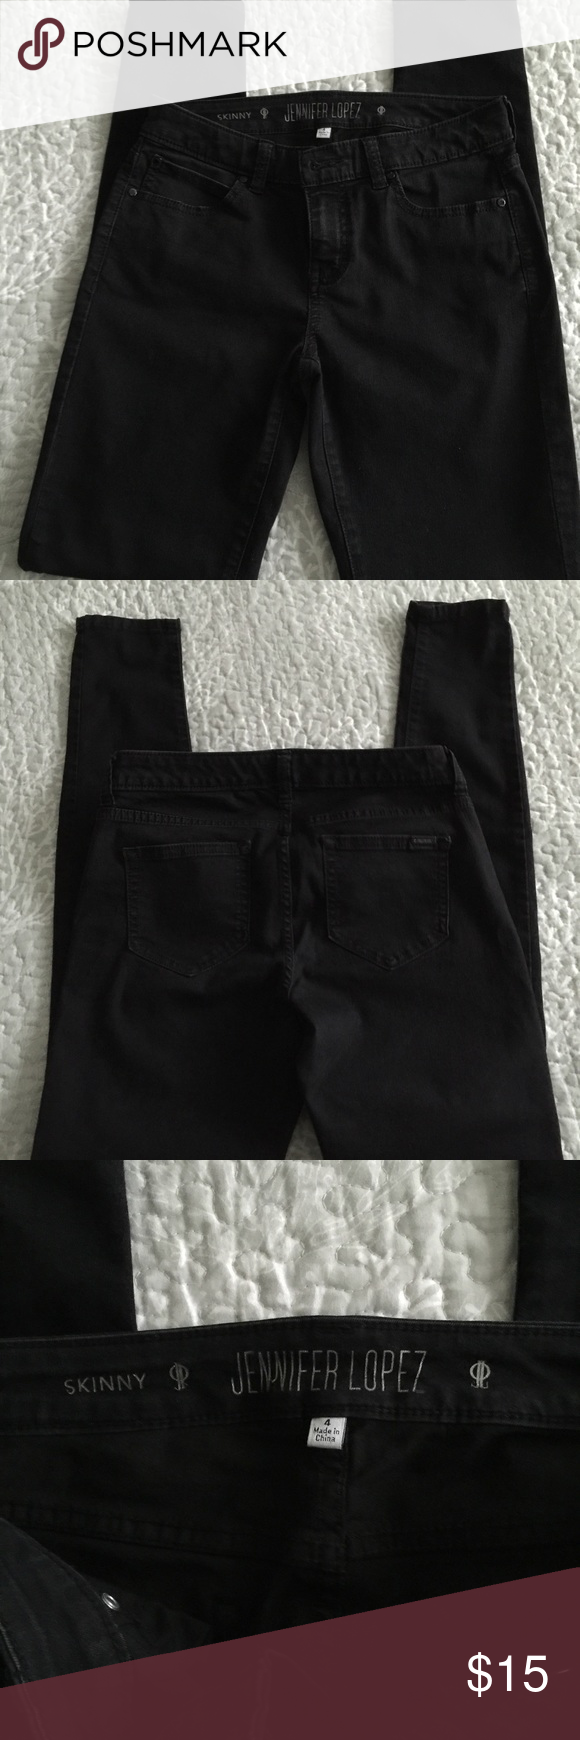 """Jennifer Lopez Skinny Jeans Like new-only worn a couple of times.  Approximate measurements (flat):  14 1/2"""", rise: 8"""", inseam: 30 1/2"""", ankle opening: 4 3/4"""" Jennifer Lopez Pants Skinny"""